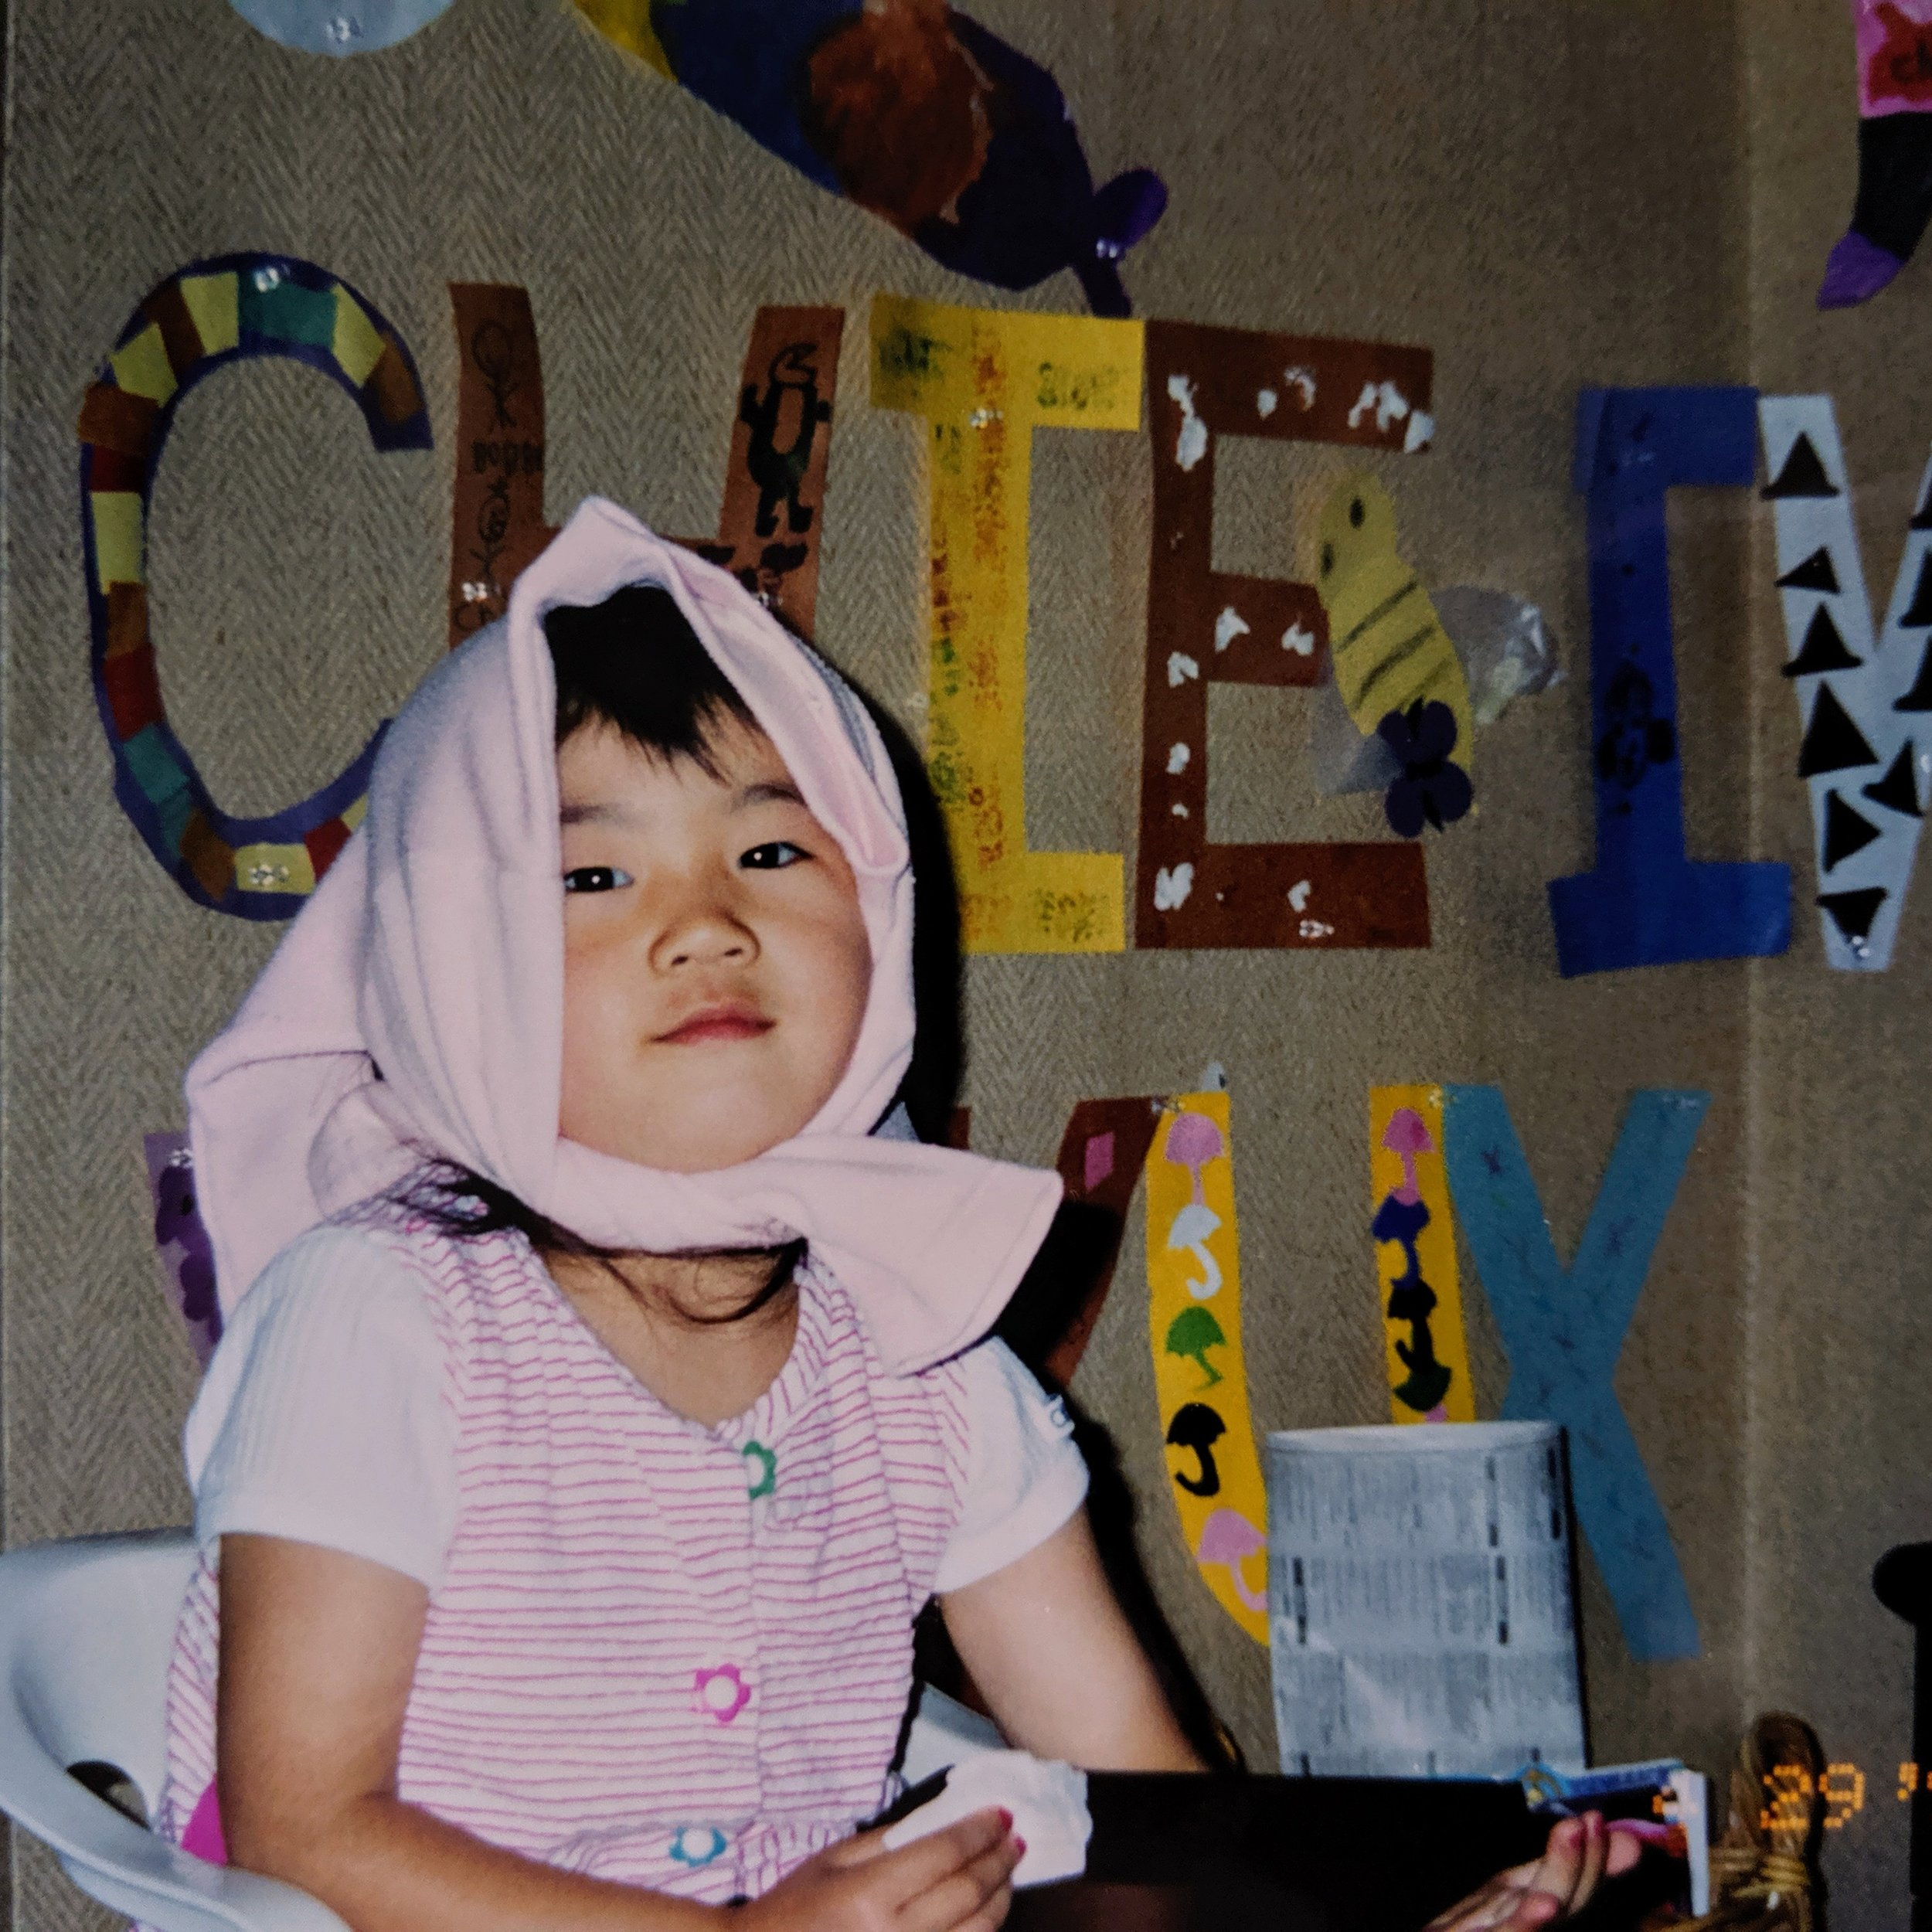 As a child, that art gallery was my pride and joy. My fashion choices though, not so much.